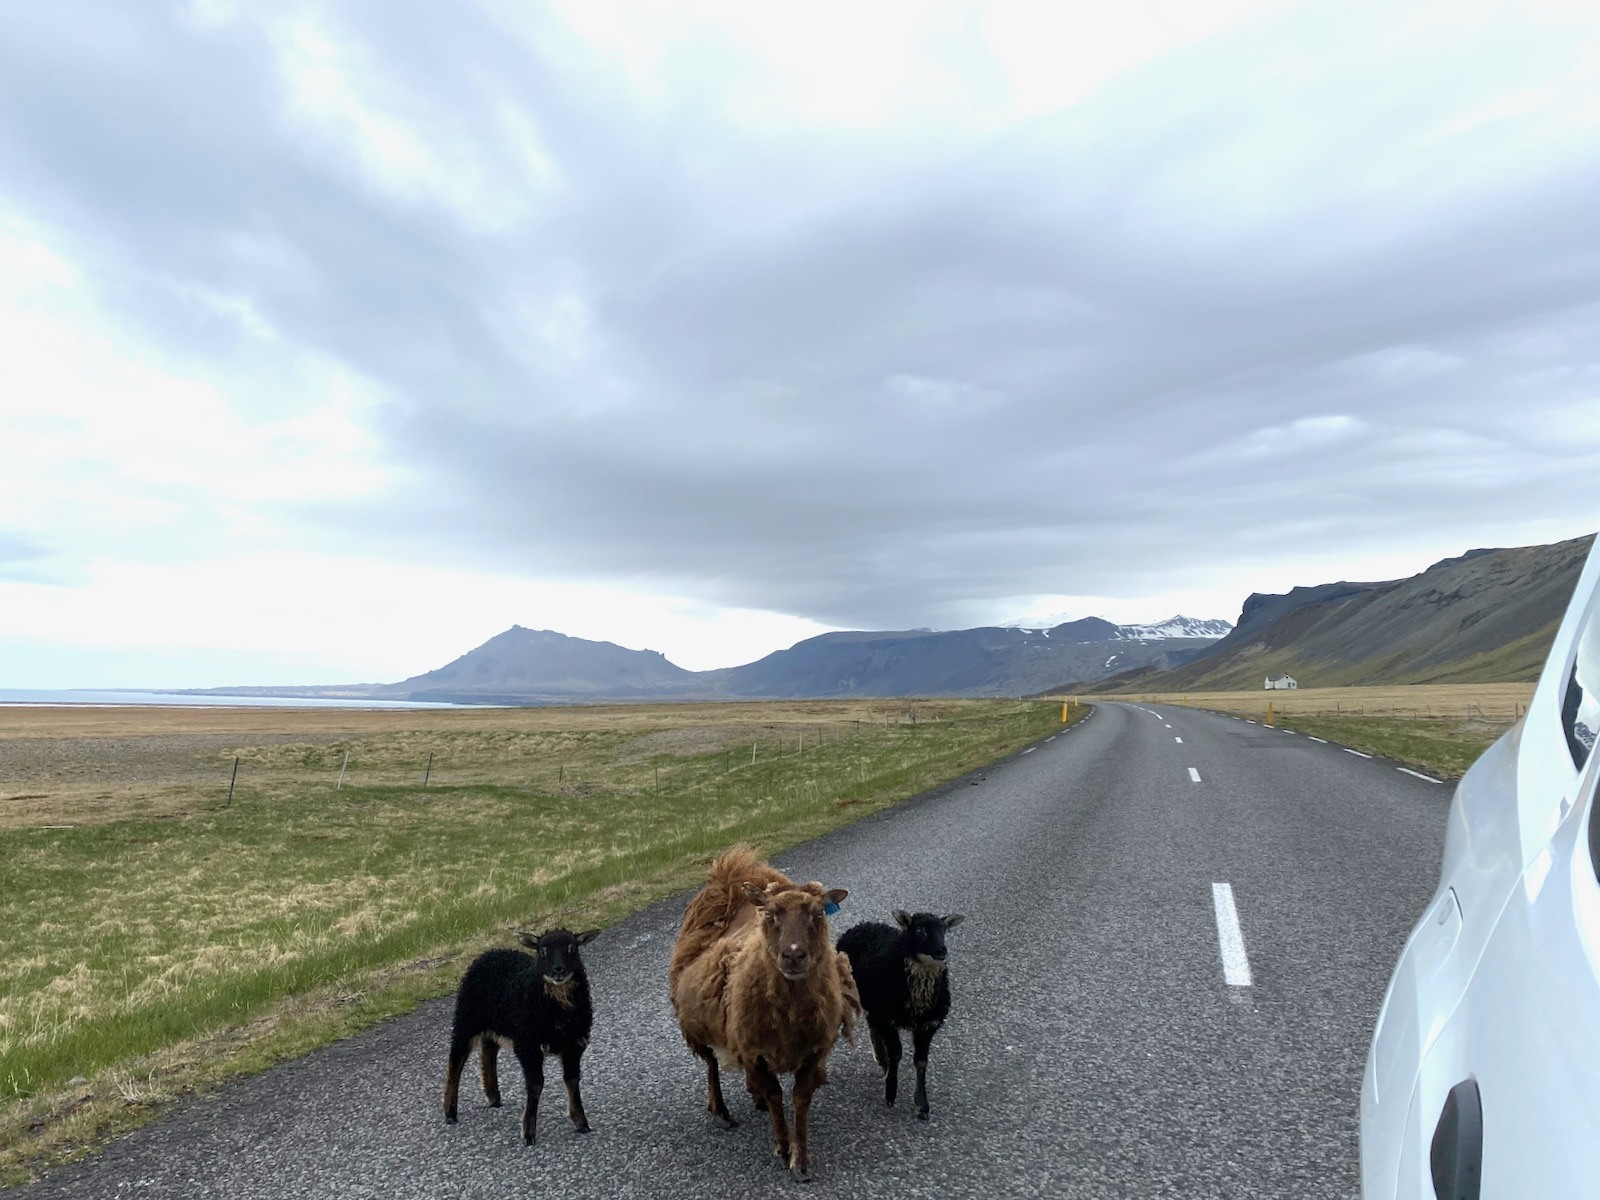 Three small Icelandic cattle in the middle of the road.